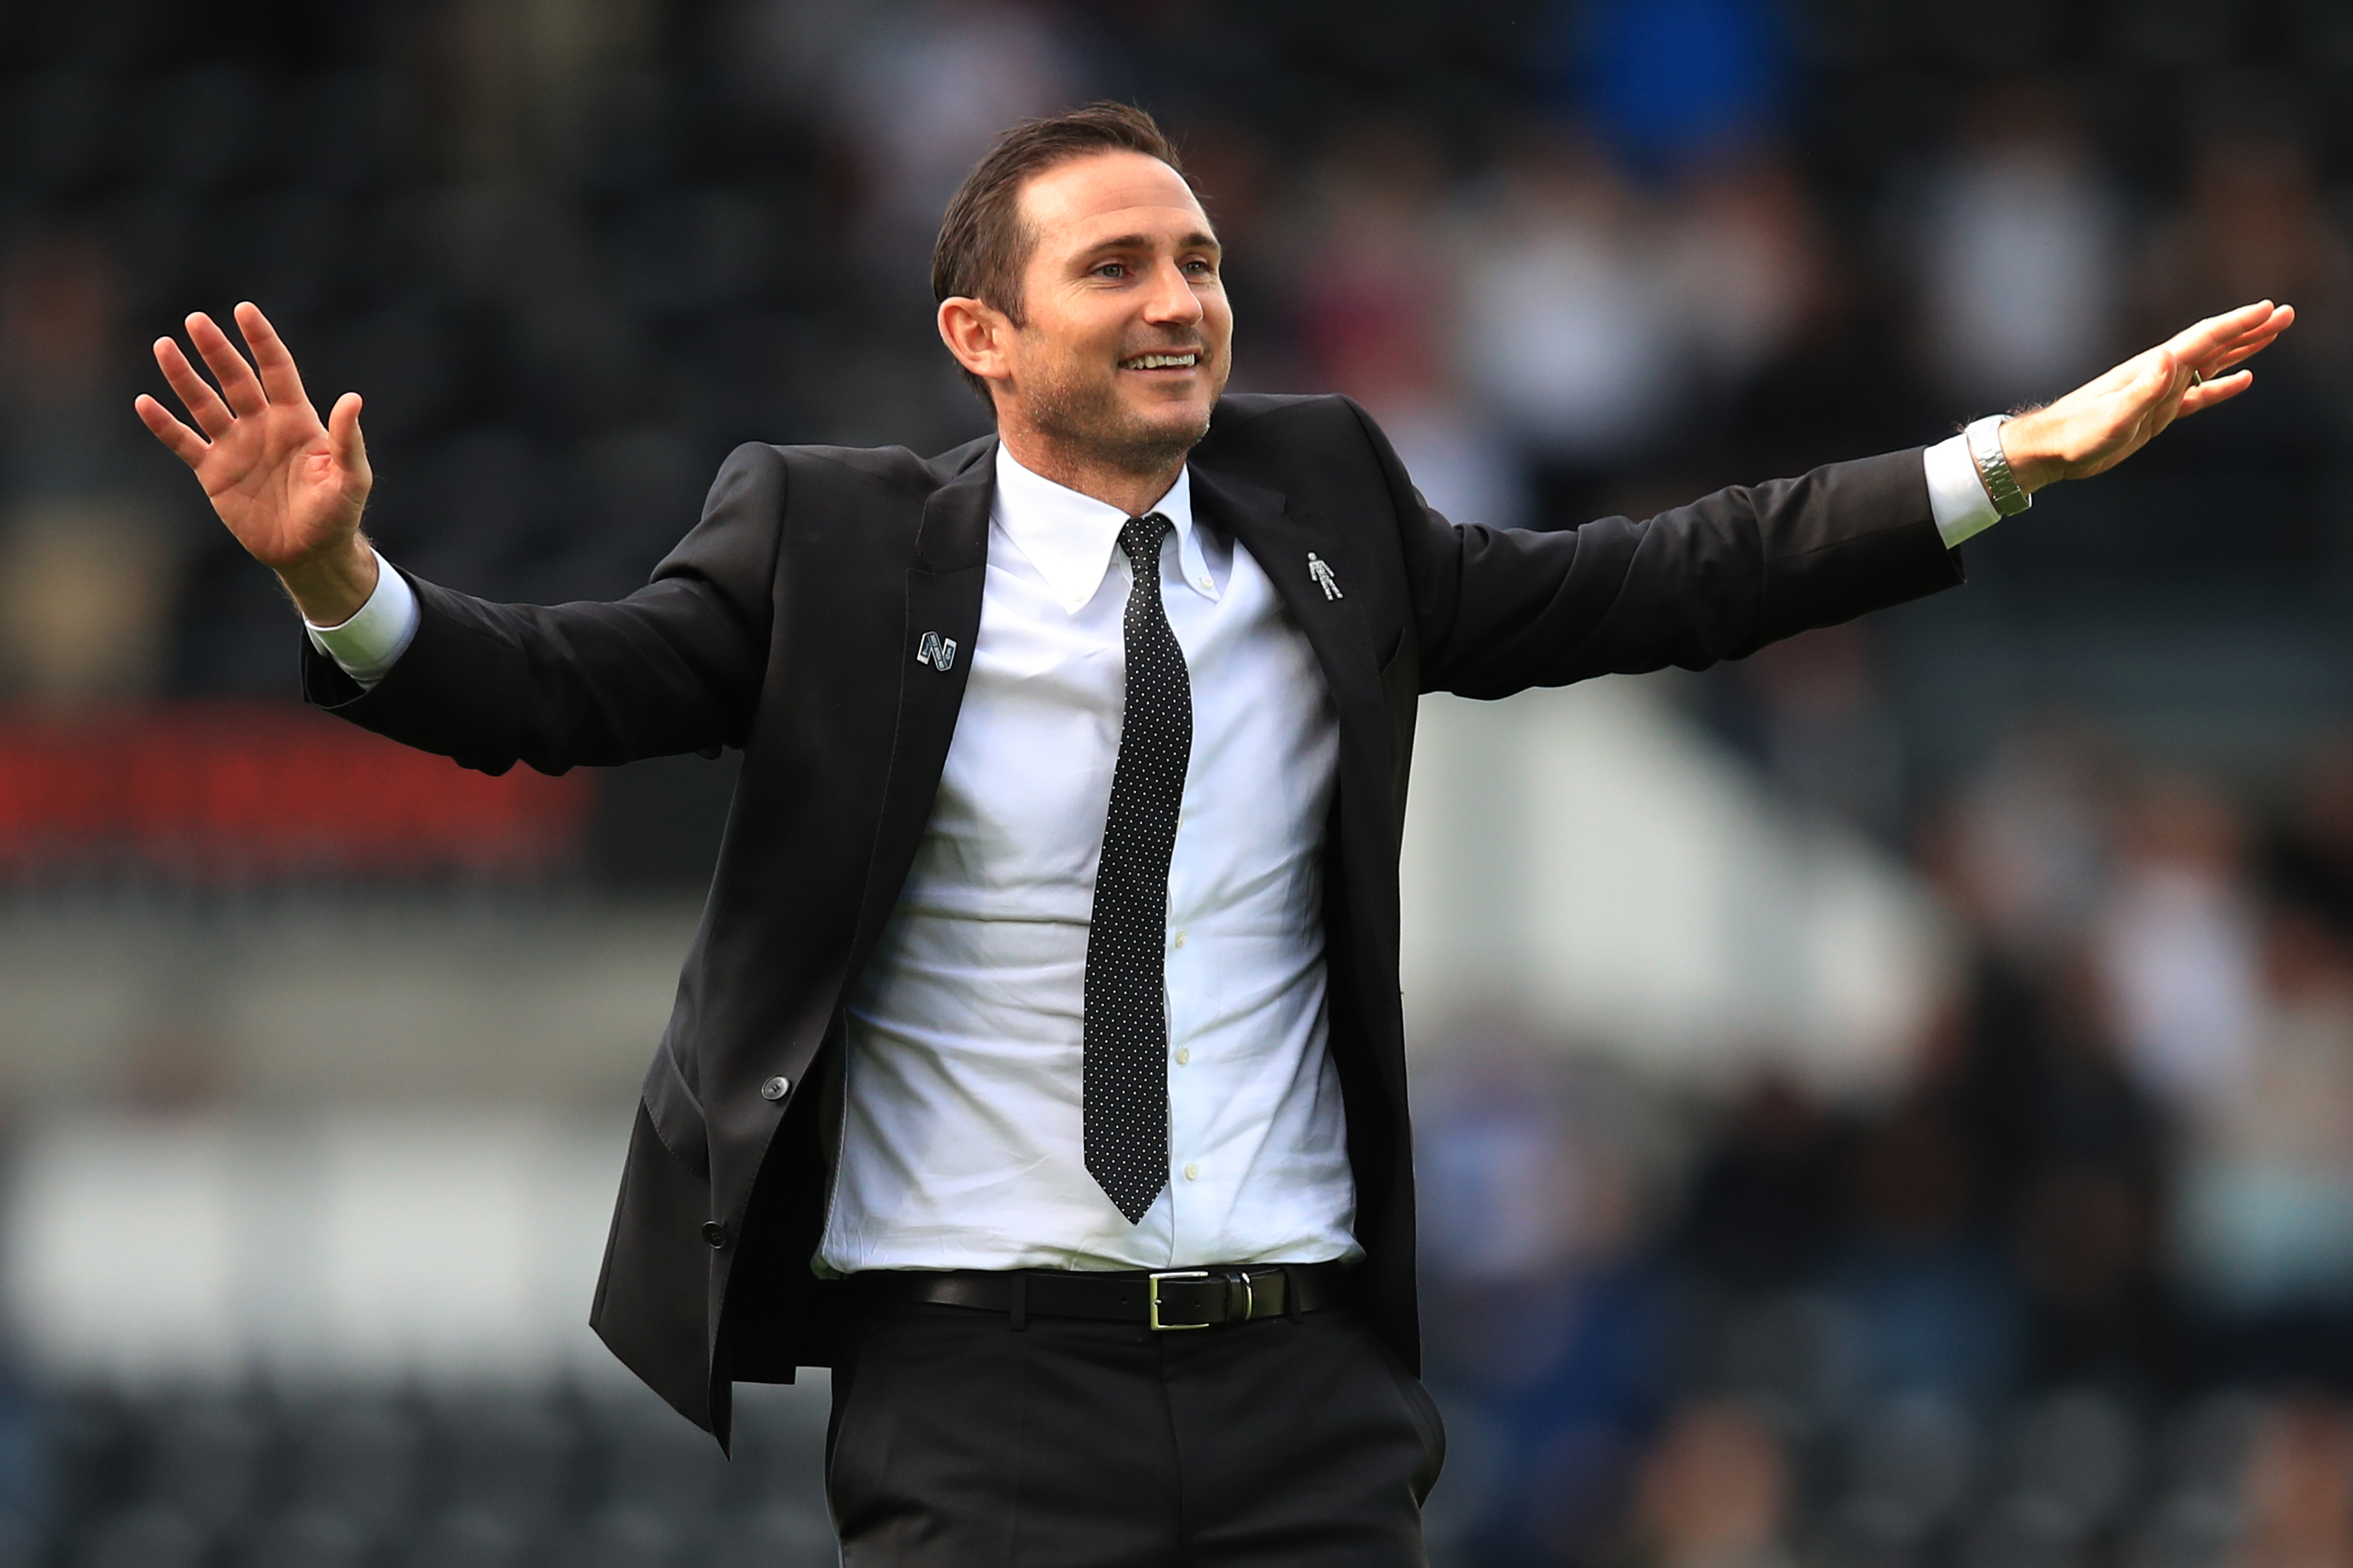 Lampard is expected to seal an emotional return to Chelsea as manager this week